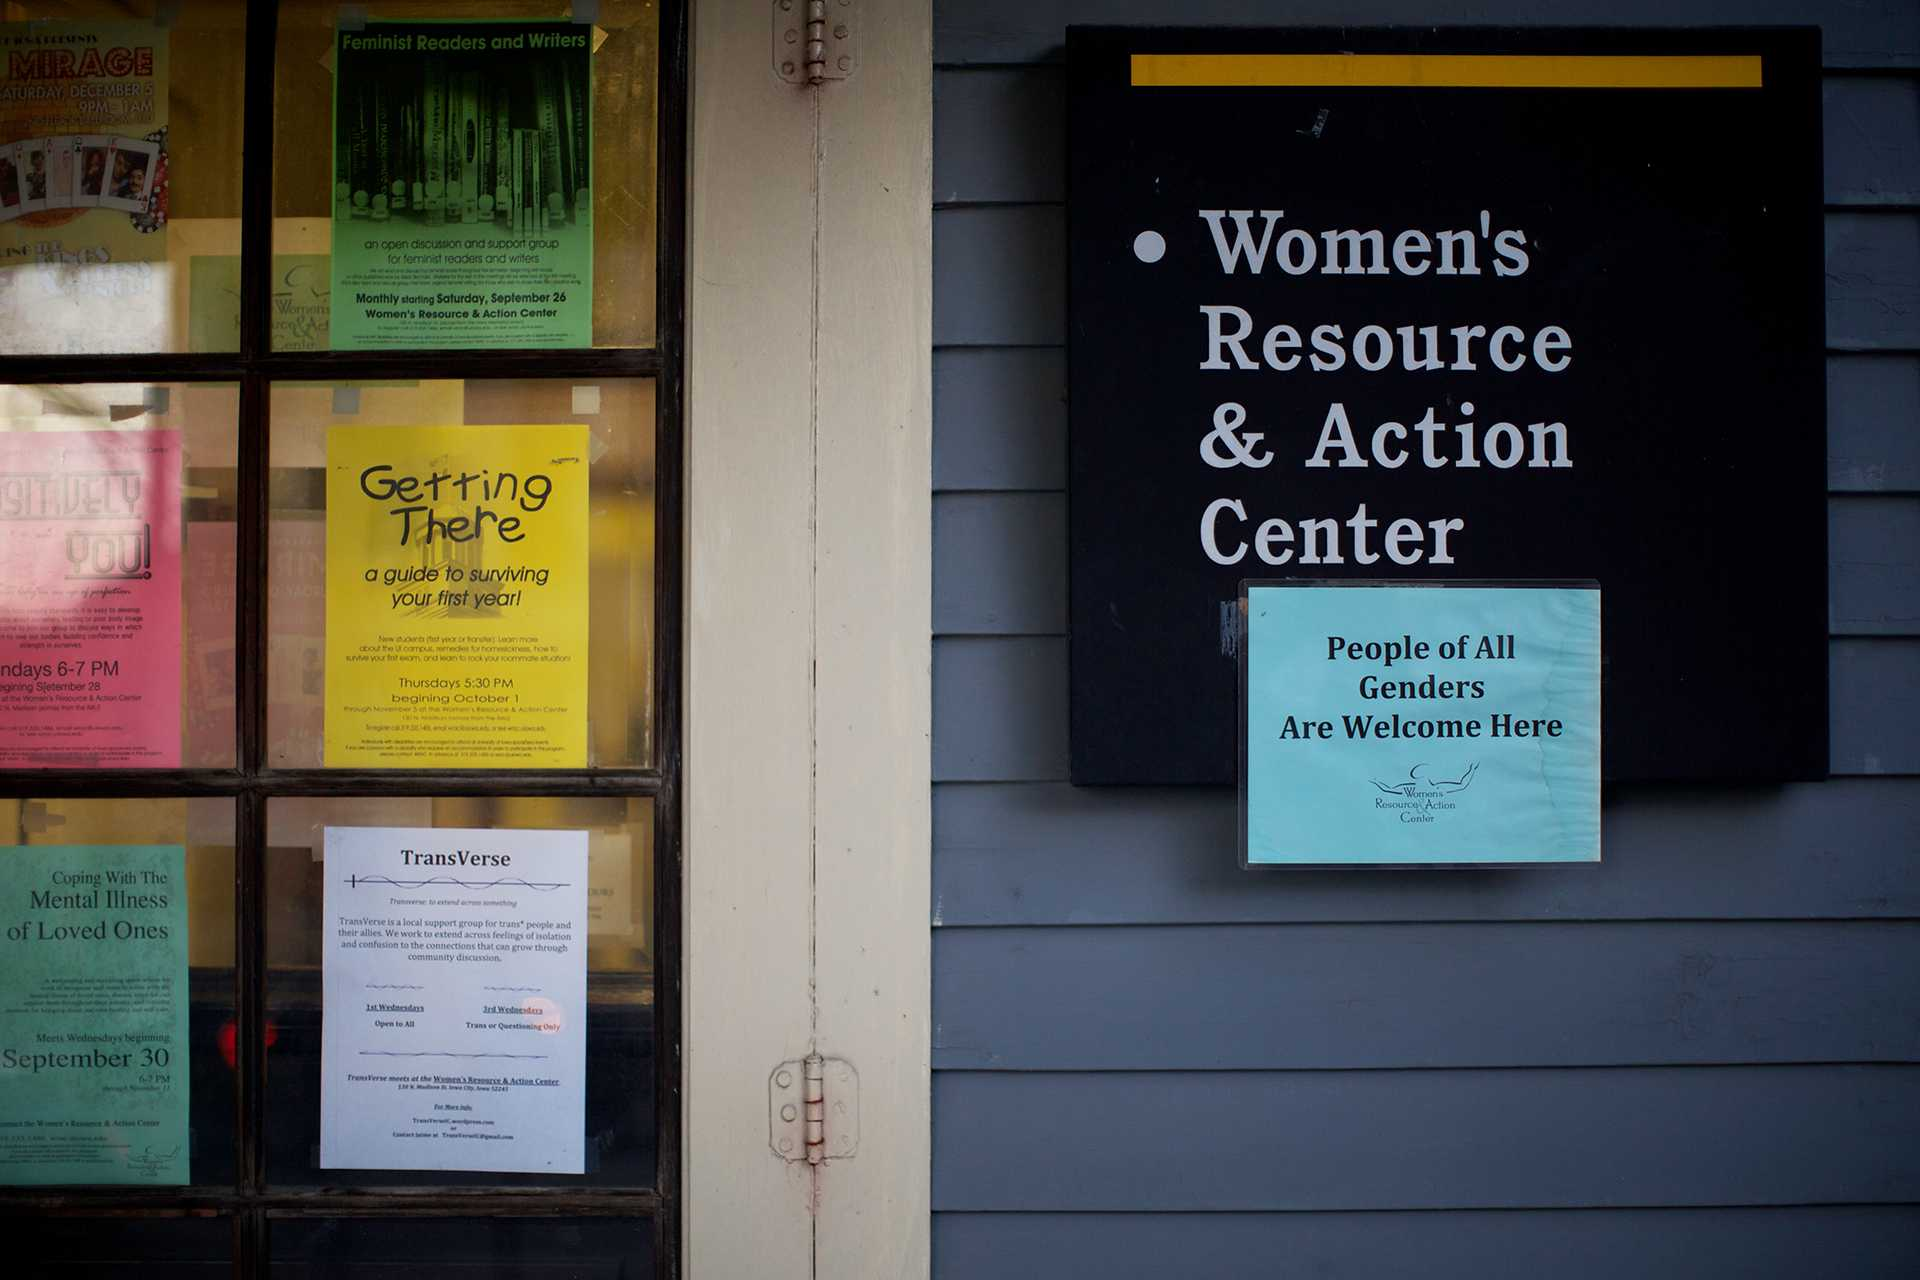 People of all genders are welcome at the Women's Resource and Action Center, Dec 3, 2015. The Women's Resource & Action Center will be moving from 130 N Madison St to The Bowman Center on Dubuque and Burlington in January. (The Daily Iowan/ Jordan Gale)